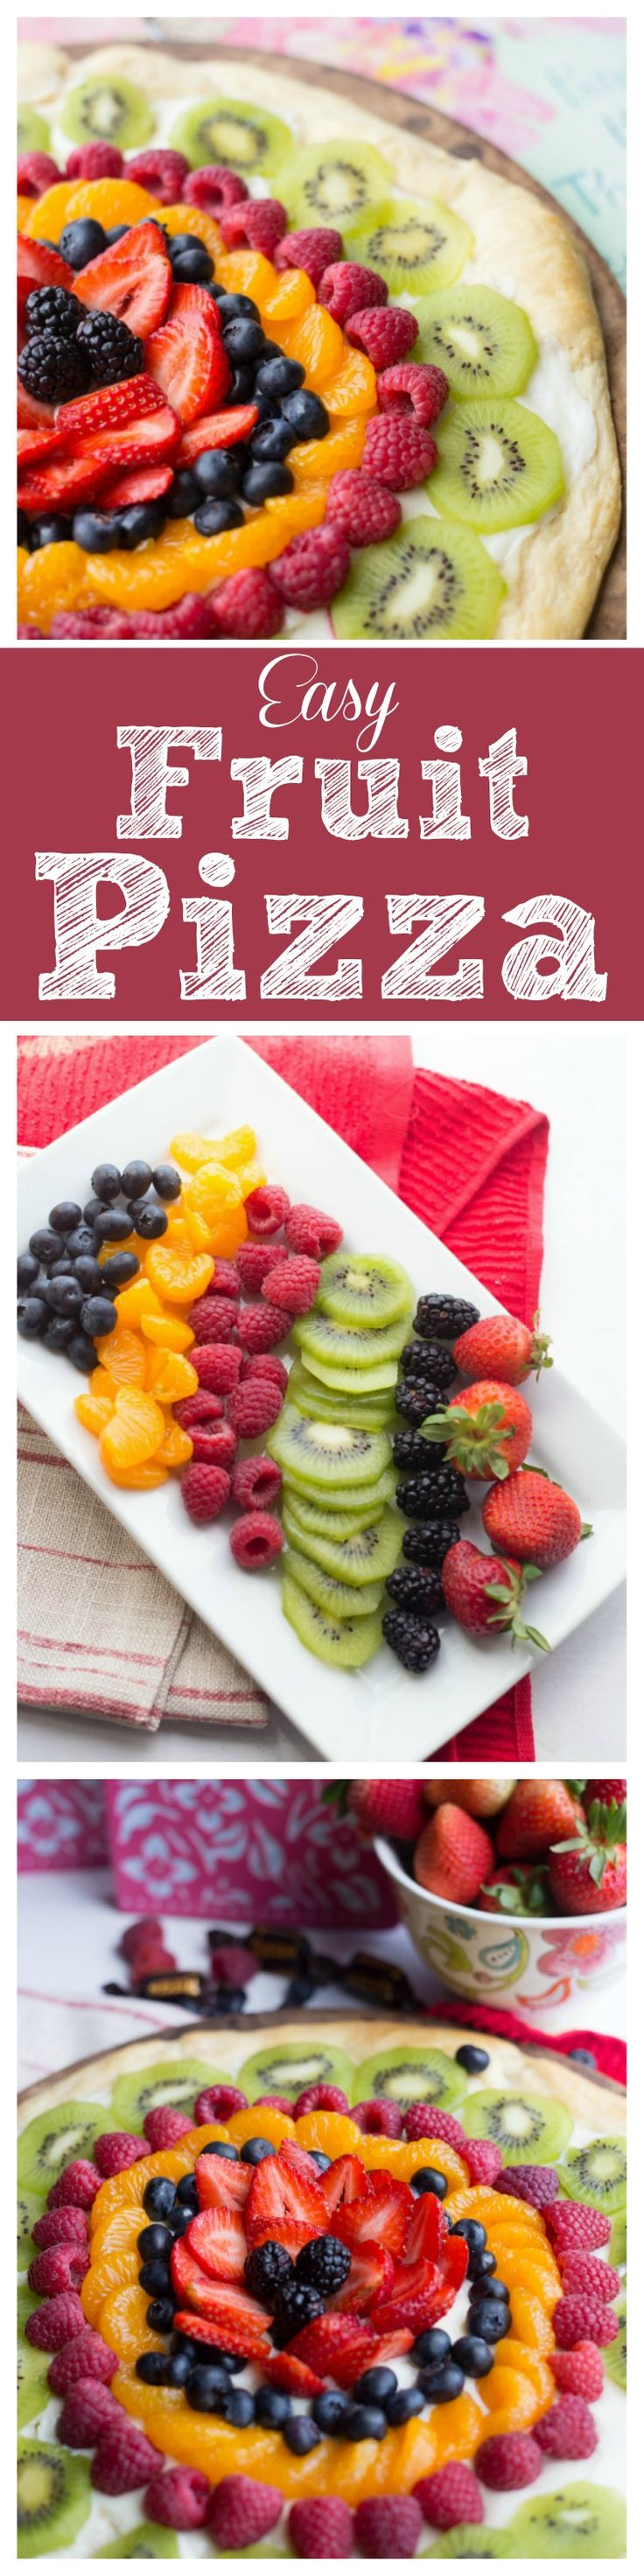 "Fruit pizza that takes only 3 ingredients + fruits! So easy to make and absolutely stunning and delicious!  Sorry, this is SO much better using a tube/roll of Pillsbury Sugar Cookie Dough.  Pat it out about 10-12"" round, bake. Spread this filling and place cut fruit!  Delicious.."